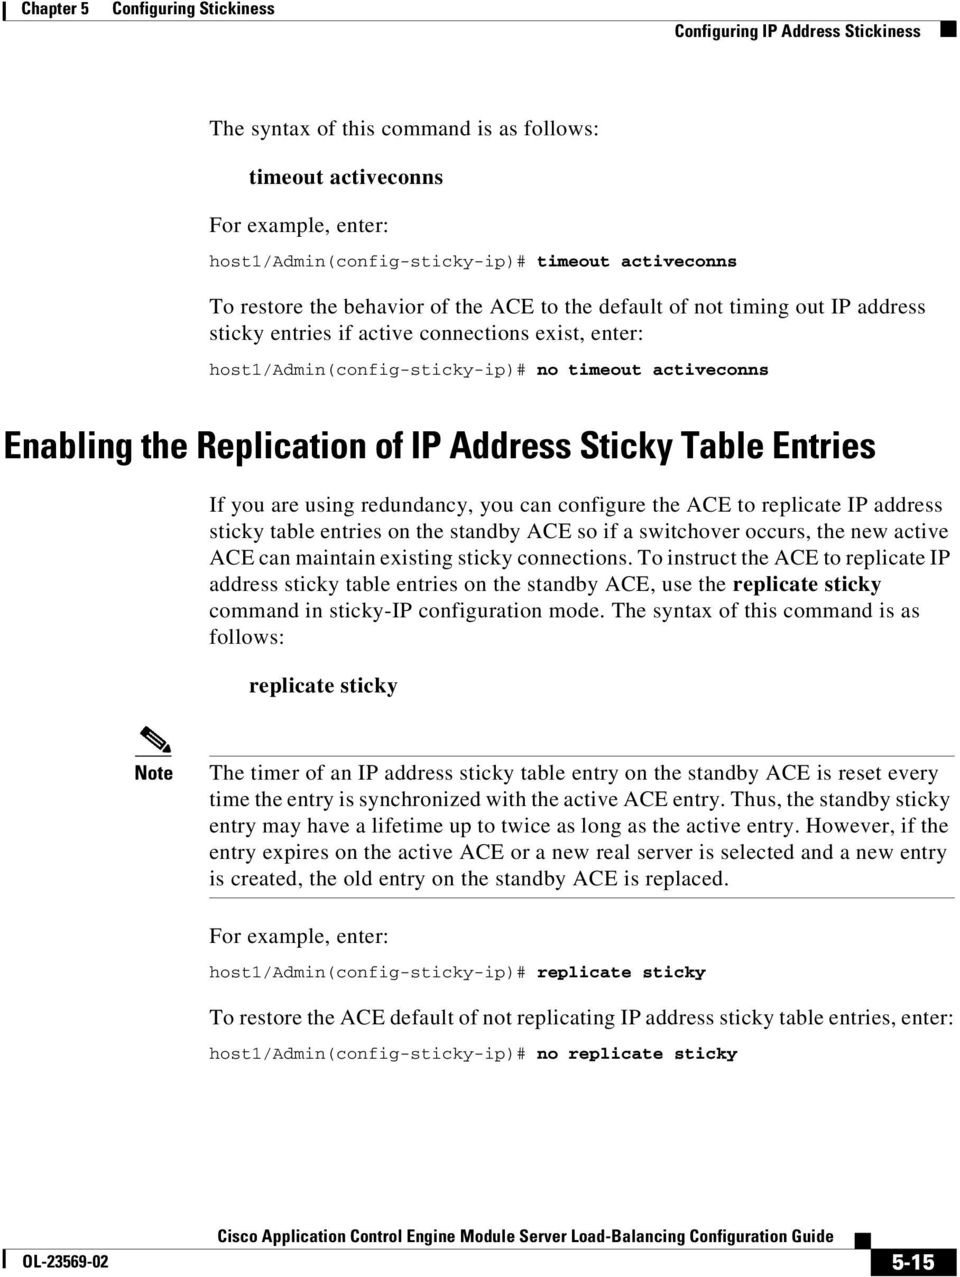 Address Sticky Table Entries If you are using redundancy, you can configure the ACE to replicate IP address sticky table entries on the standby ACE so if a switchover occurs, the new active ACE can